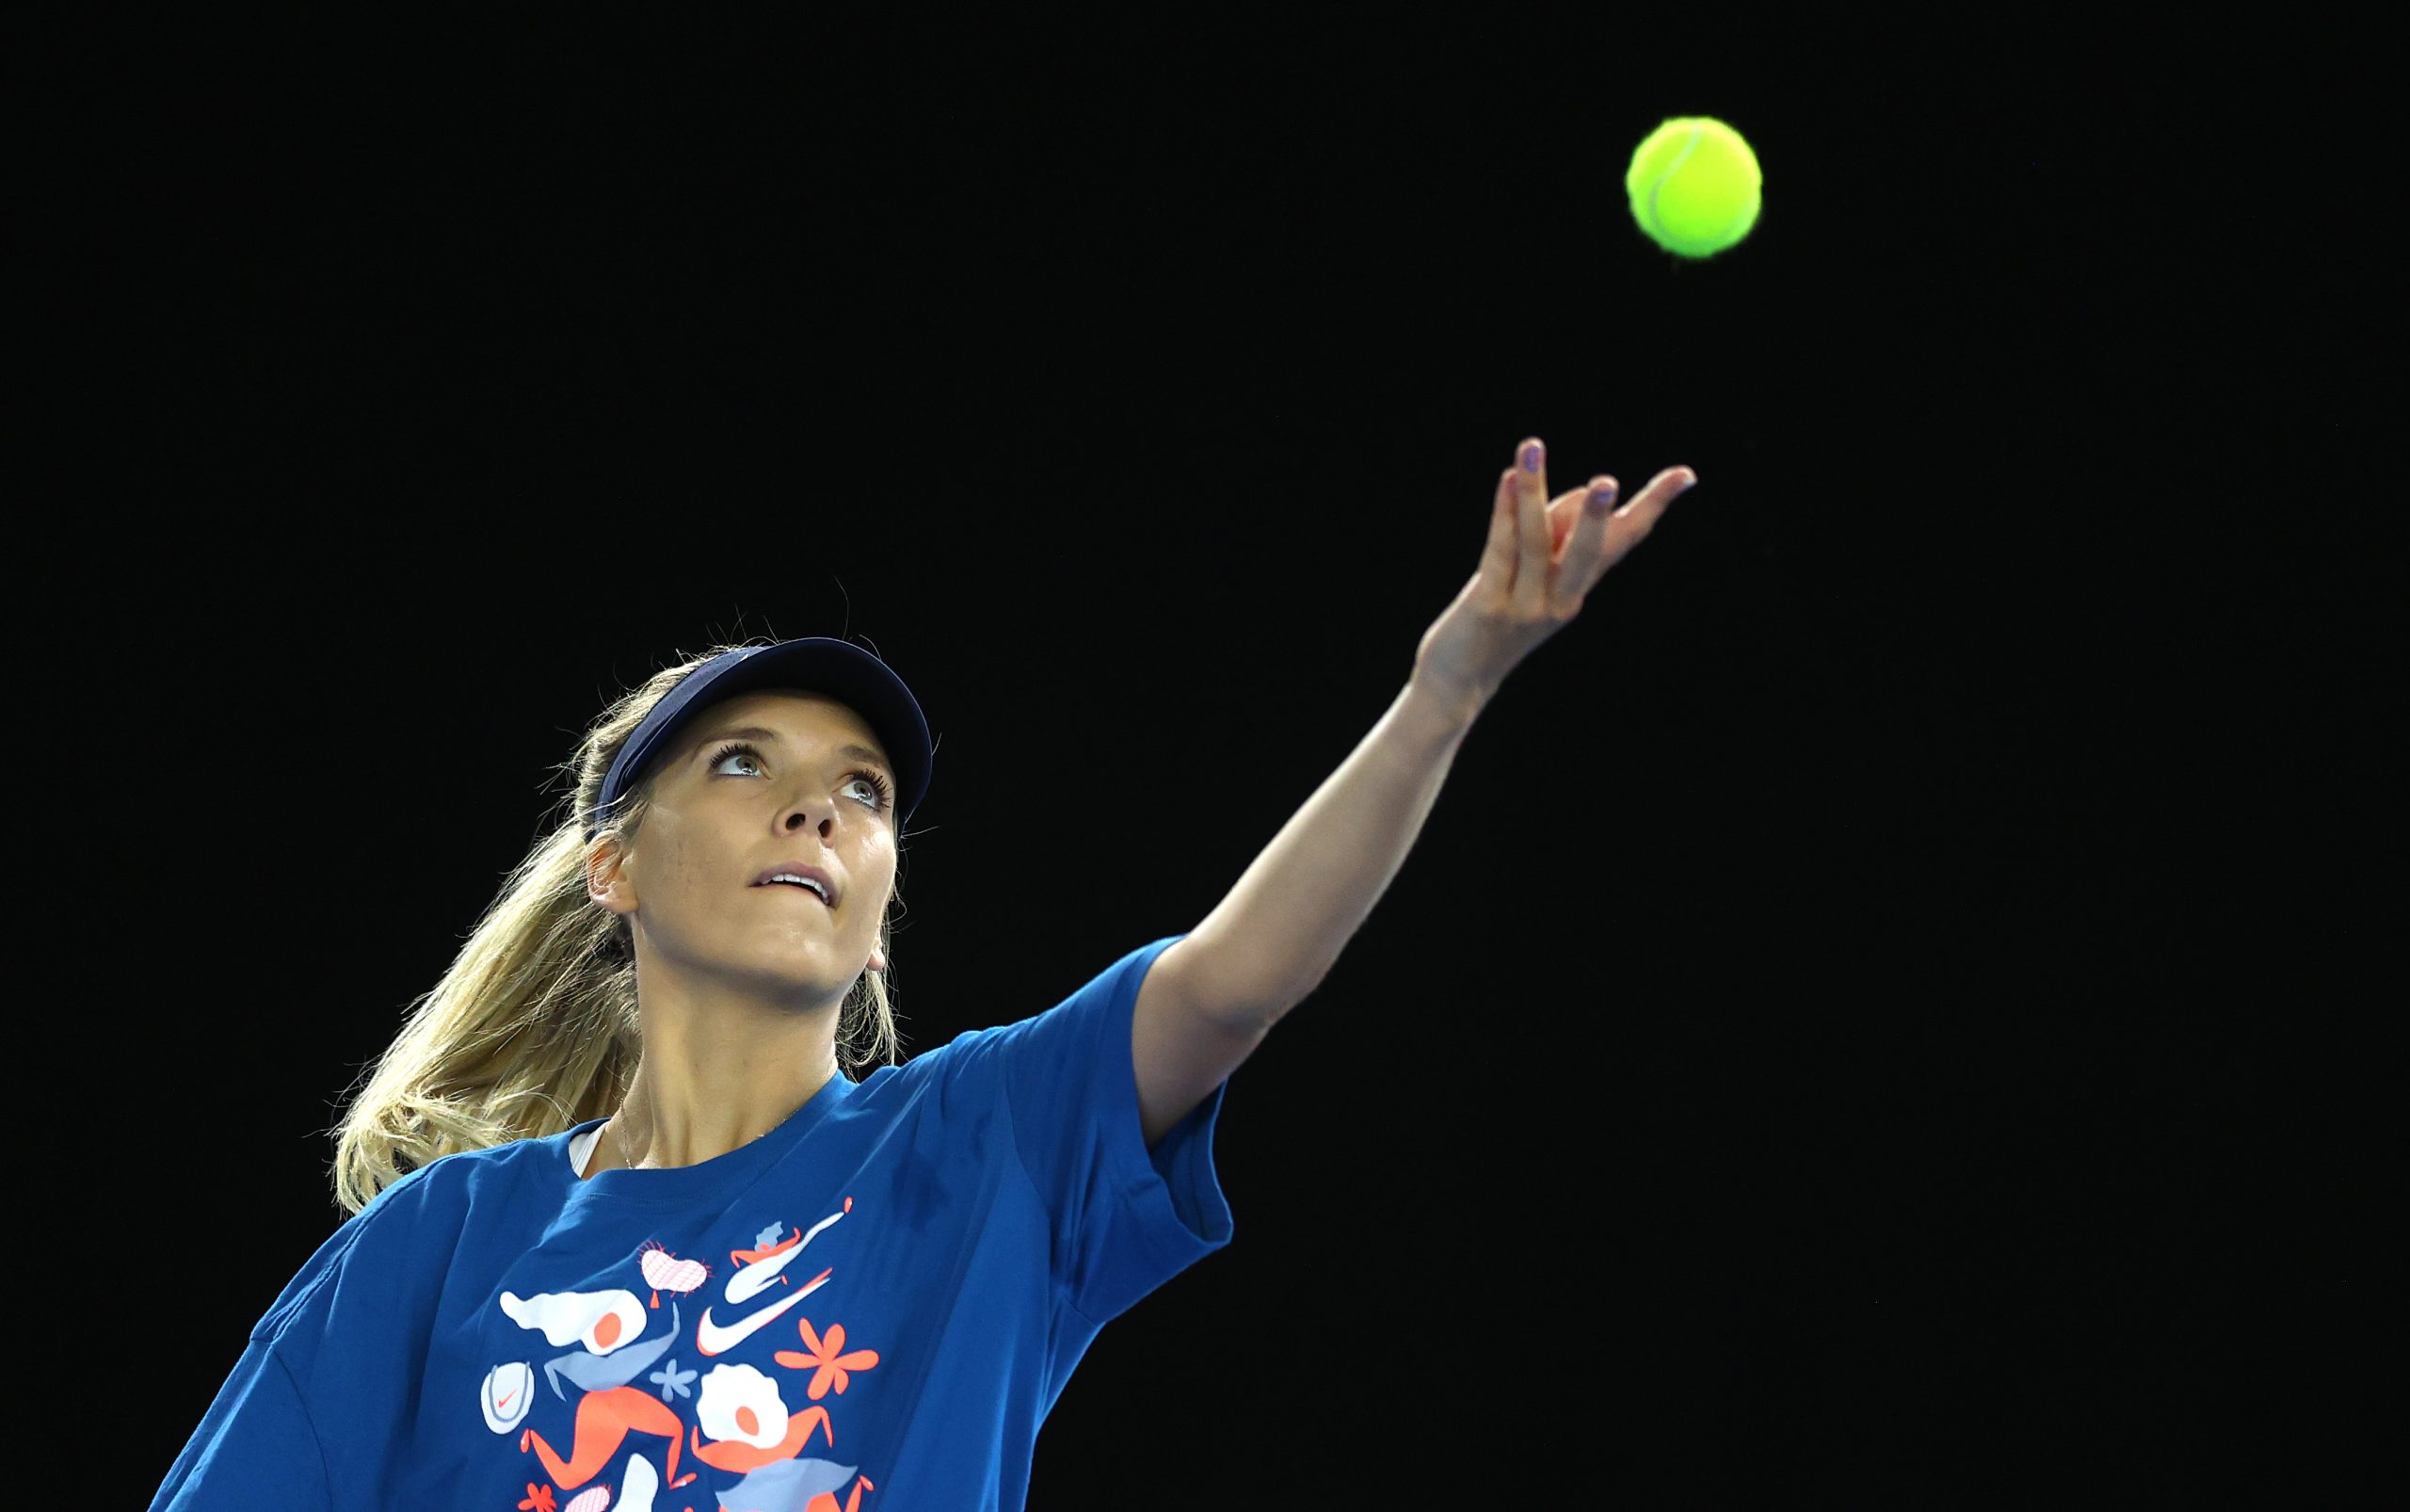 LONDON, ENGLAND - APRIL 15: Katie Boulter of Great Britain serves during a preview day of the Billie Jean King Cup Play-Offs between Great Britain and Mexico at National Tennis Centre on April 15, 2021 in London, England. (Photo by Naomi Baker/Getty Images for LTA)